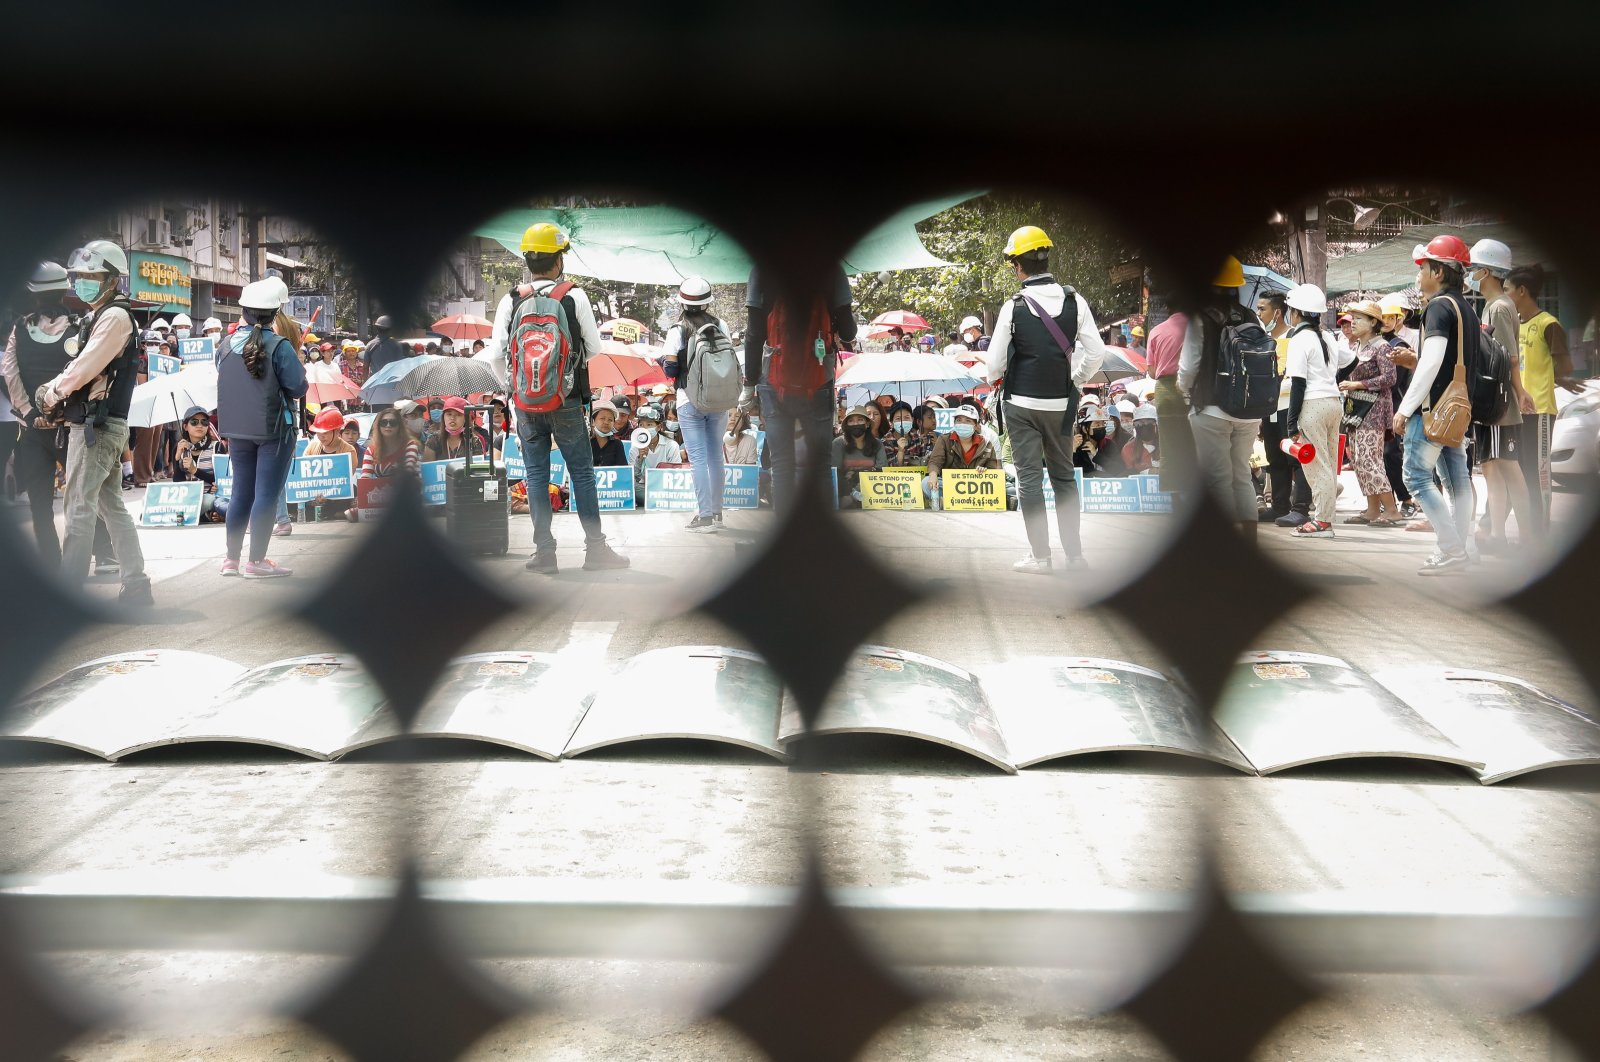 Demonstrators are seen from the holes of a shield during a protest against the military coup in Yangon, Myanmar, March, 18, 2021. (EPA)